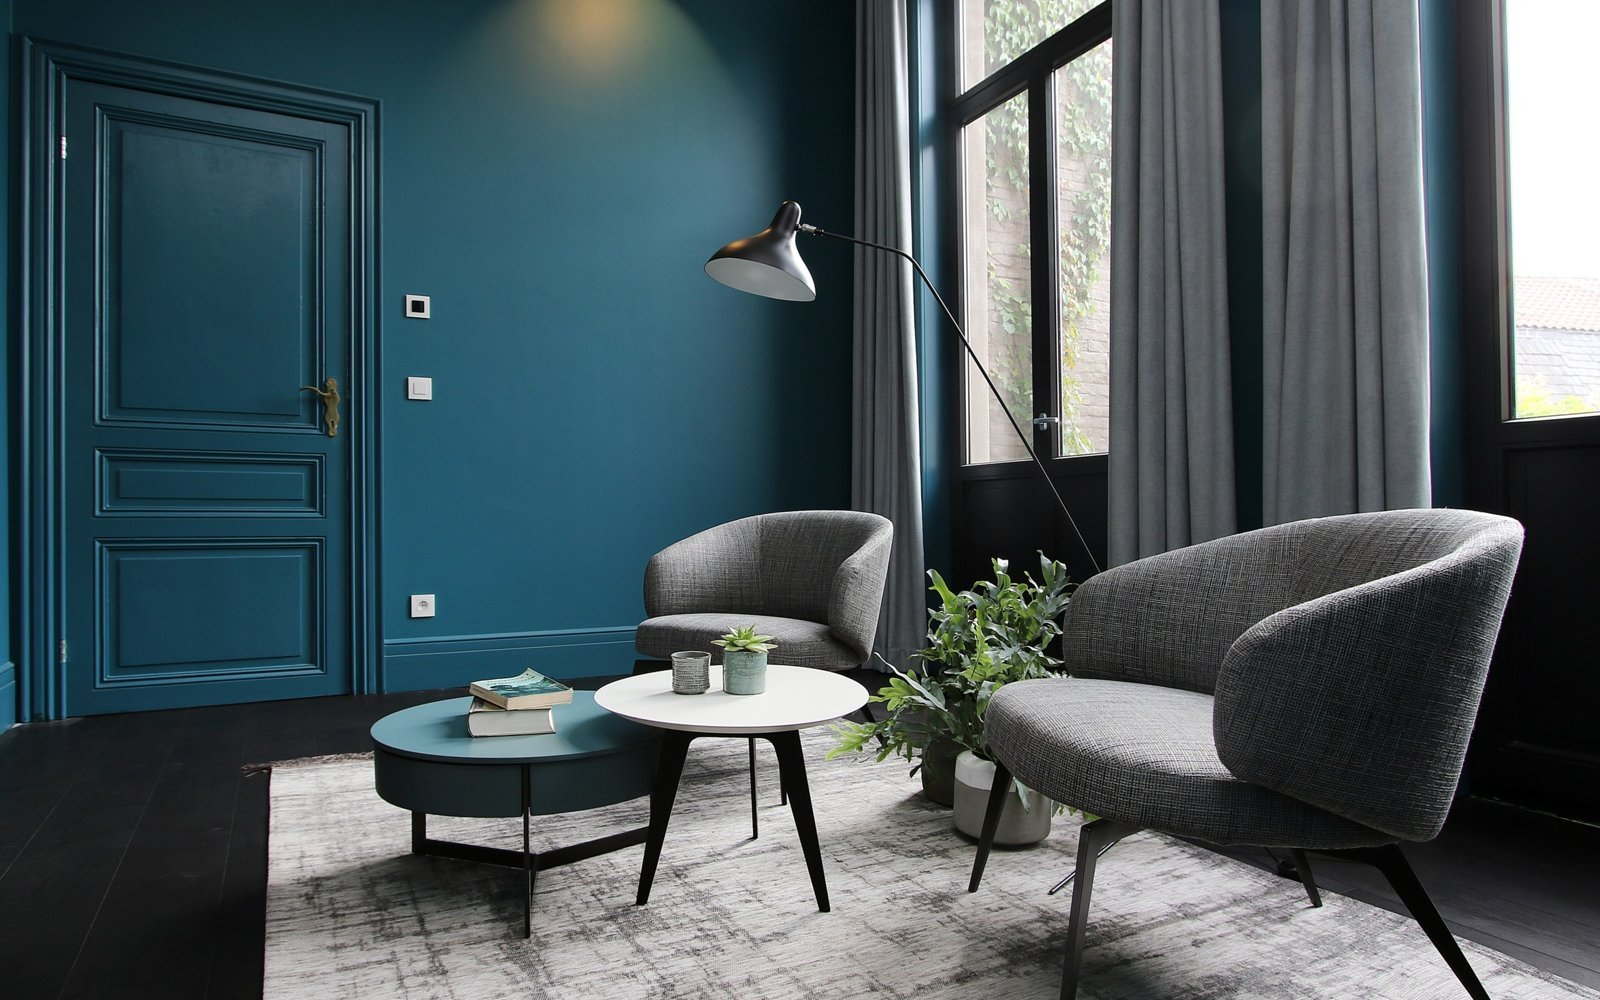 CB Gent - Totaalproject interieur